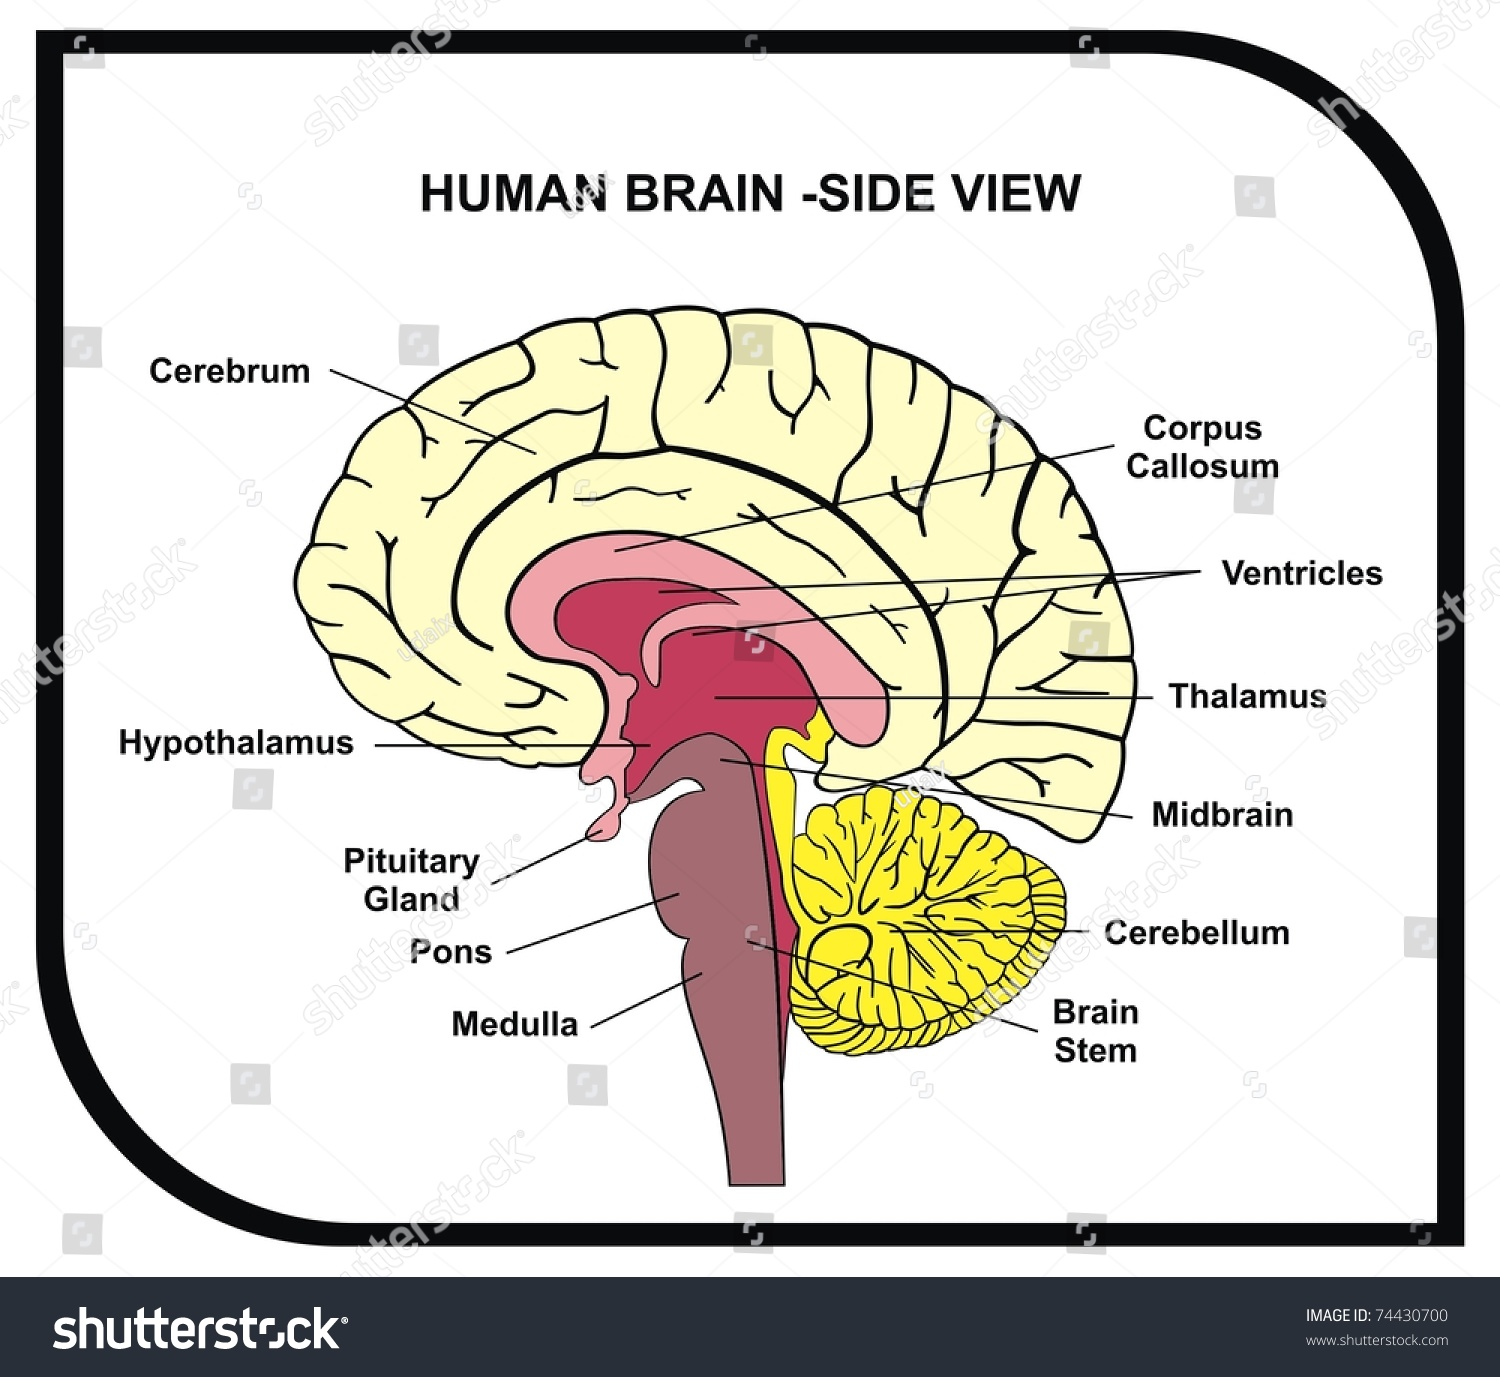 human brain diagram cerebrum wiring for house lights a cat plays fetch therewasanattempt